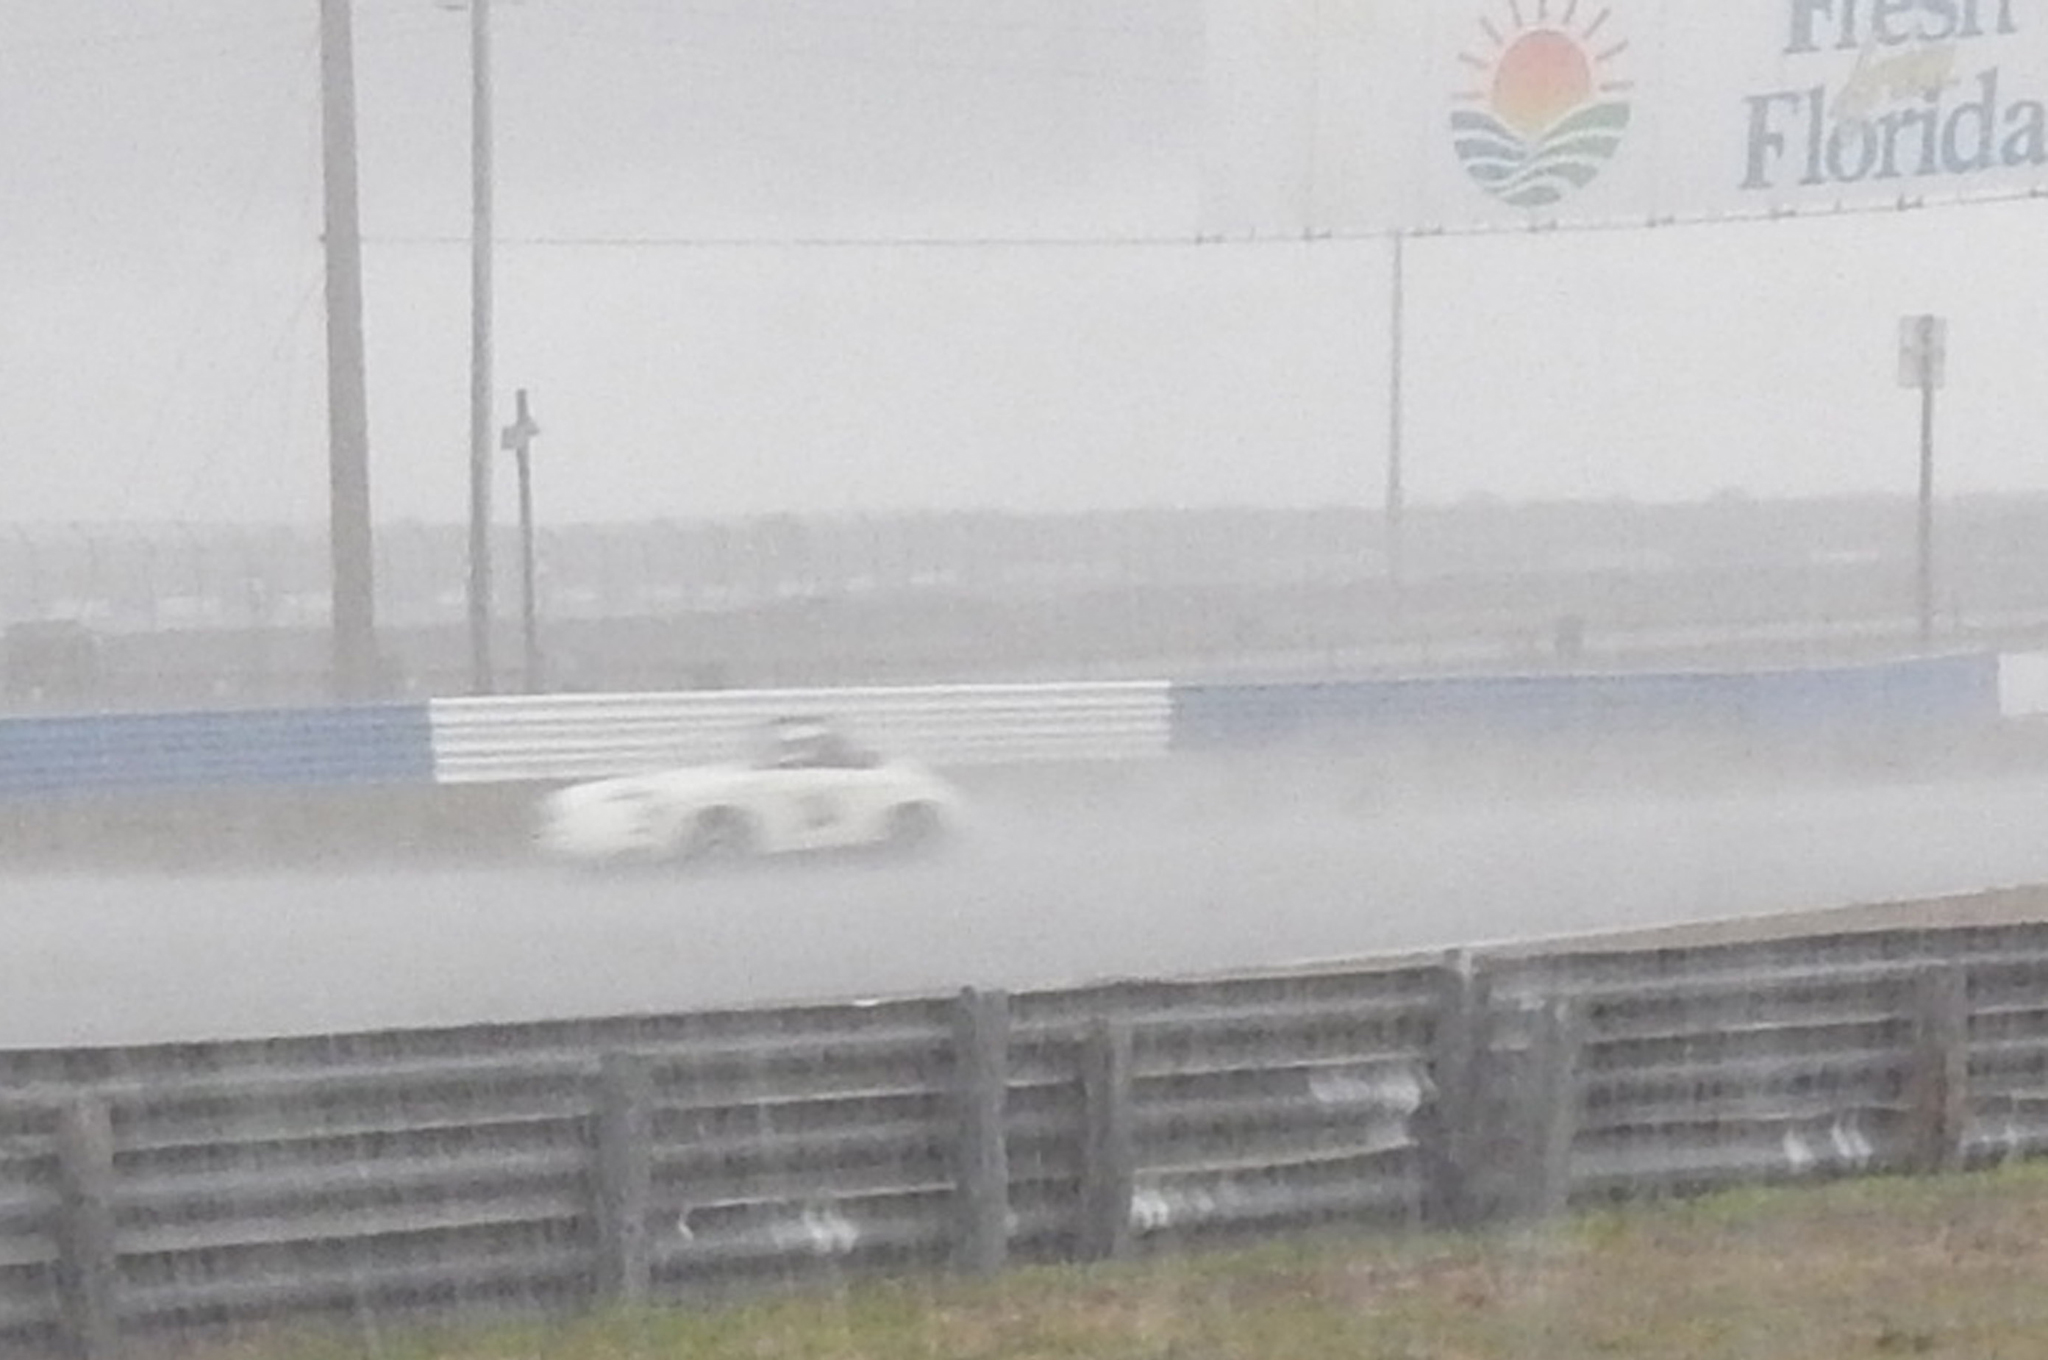 Rain dampened only one race – but it really poured. Some very determined drivers of open cars plowed on despite having no effective wipers and minimal windshields.